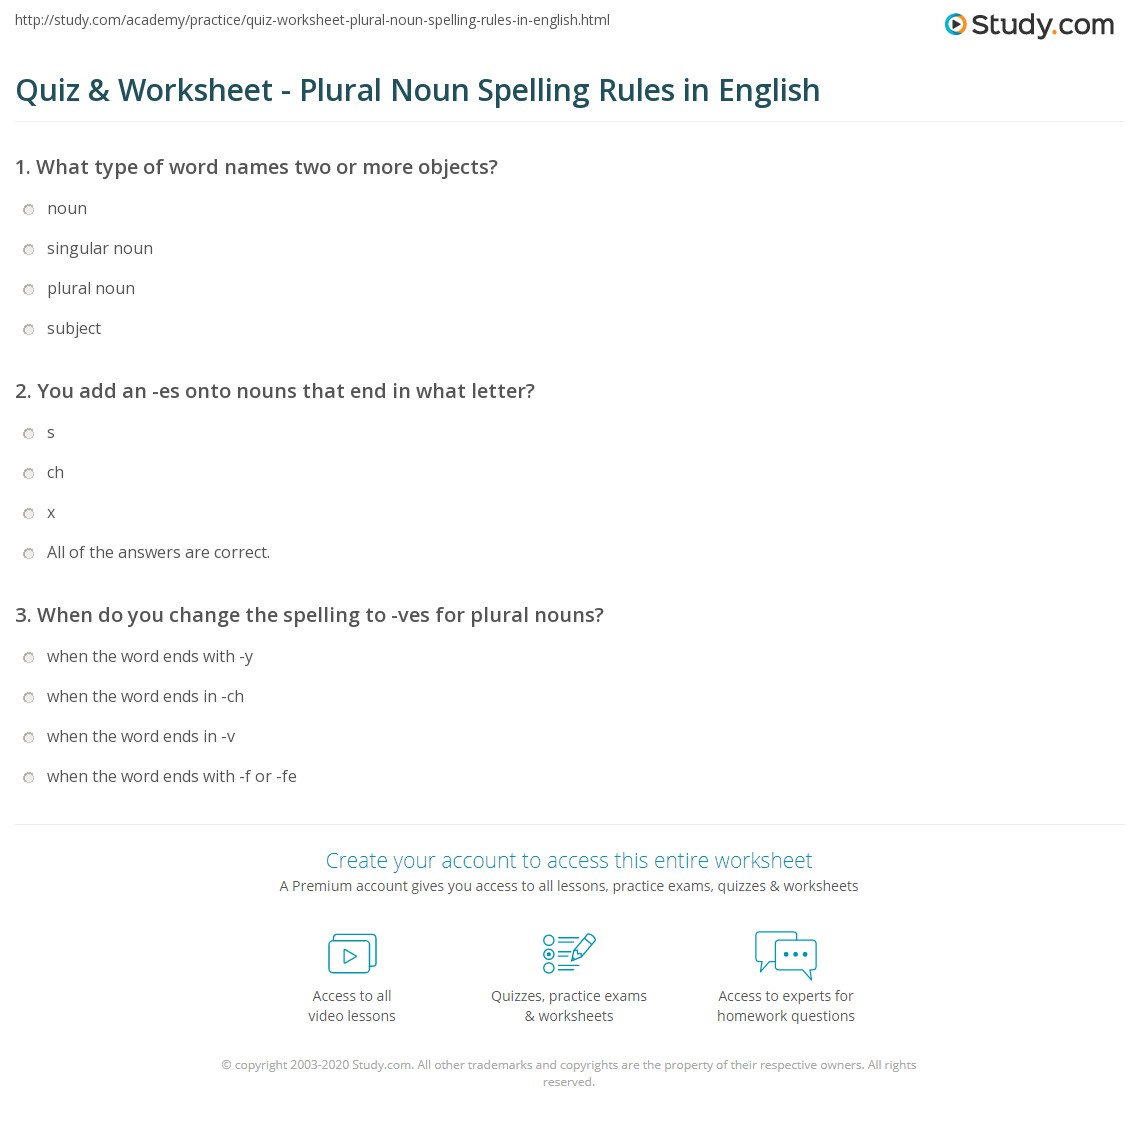 Workbooks plural rules worksheets : Quiz & Worksheet - Plural Noun Spelling Rules in English | Study.com